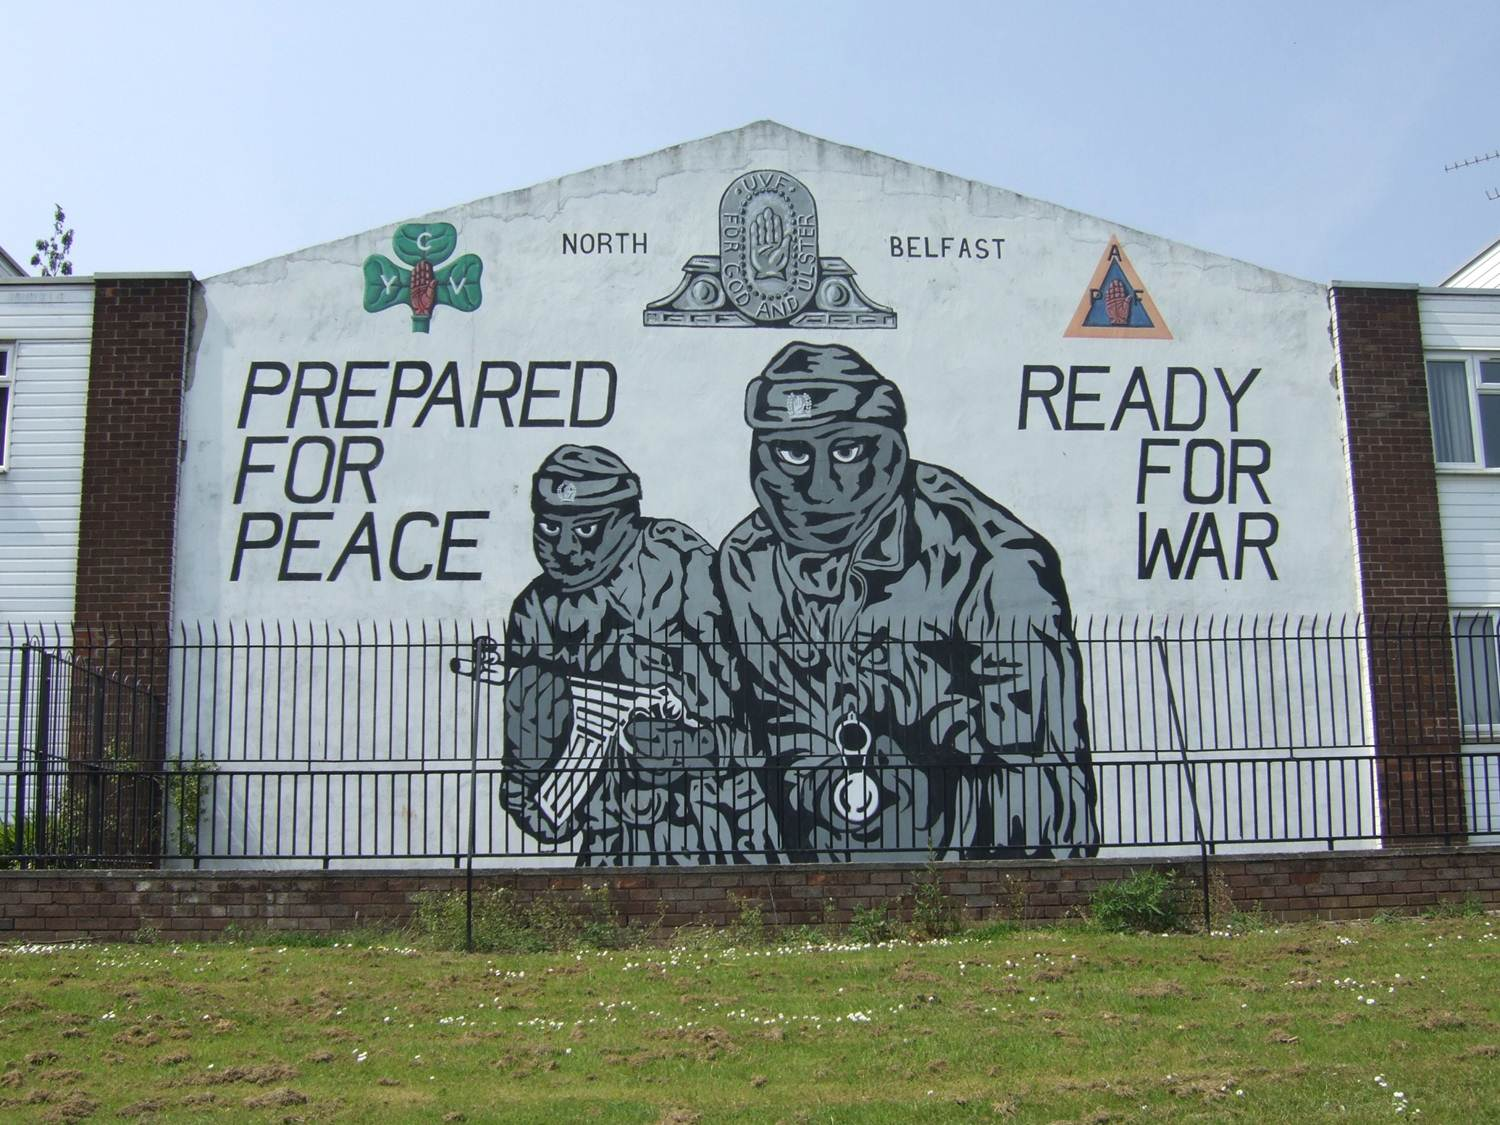 interesting civil rights murals from northern ireland